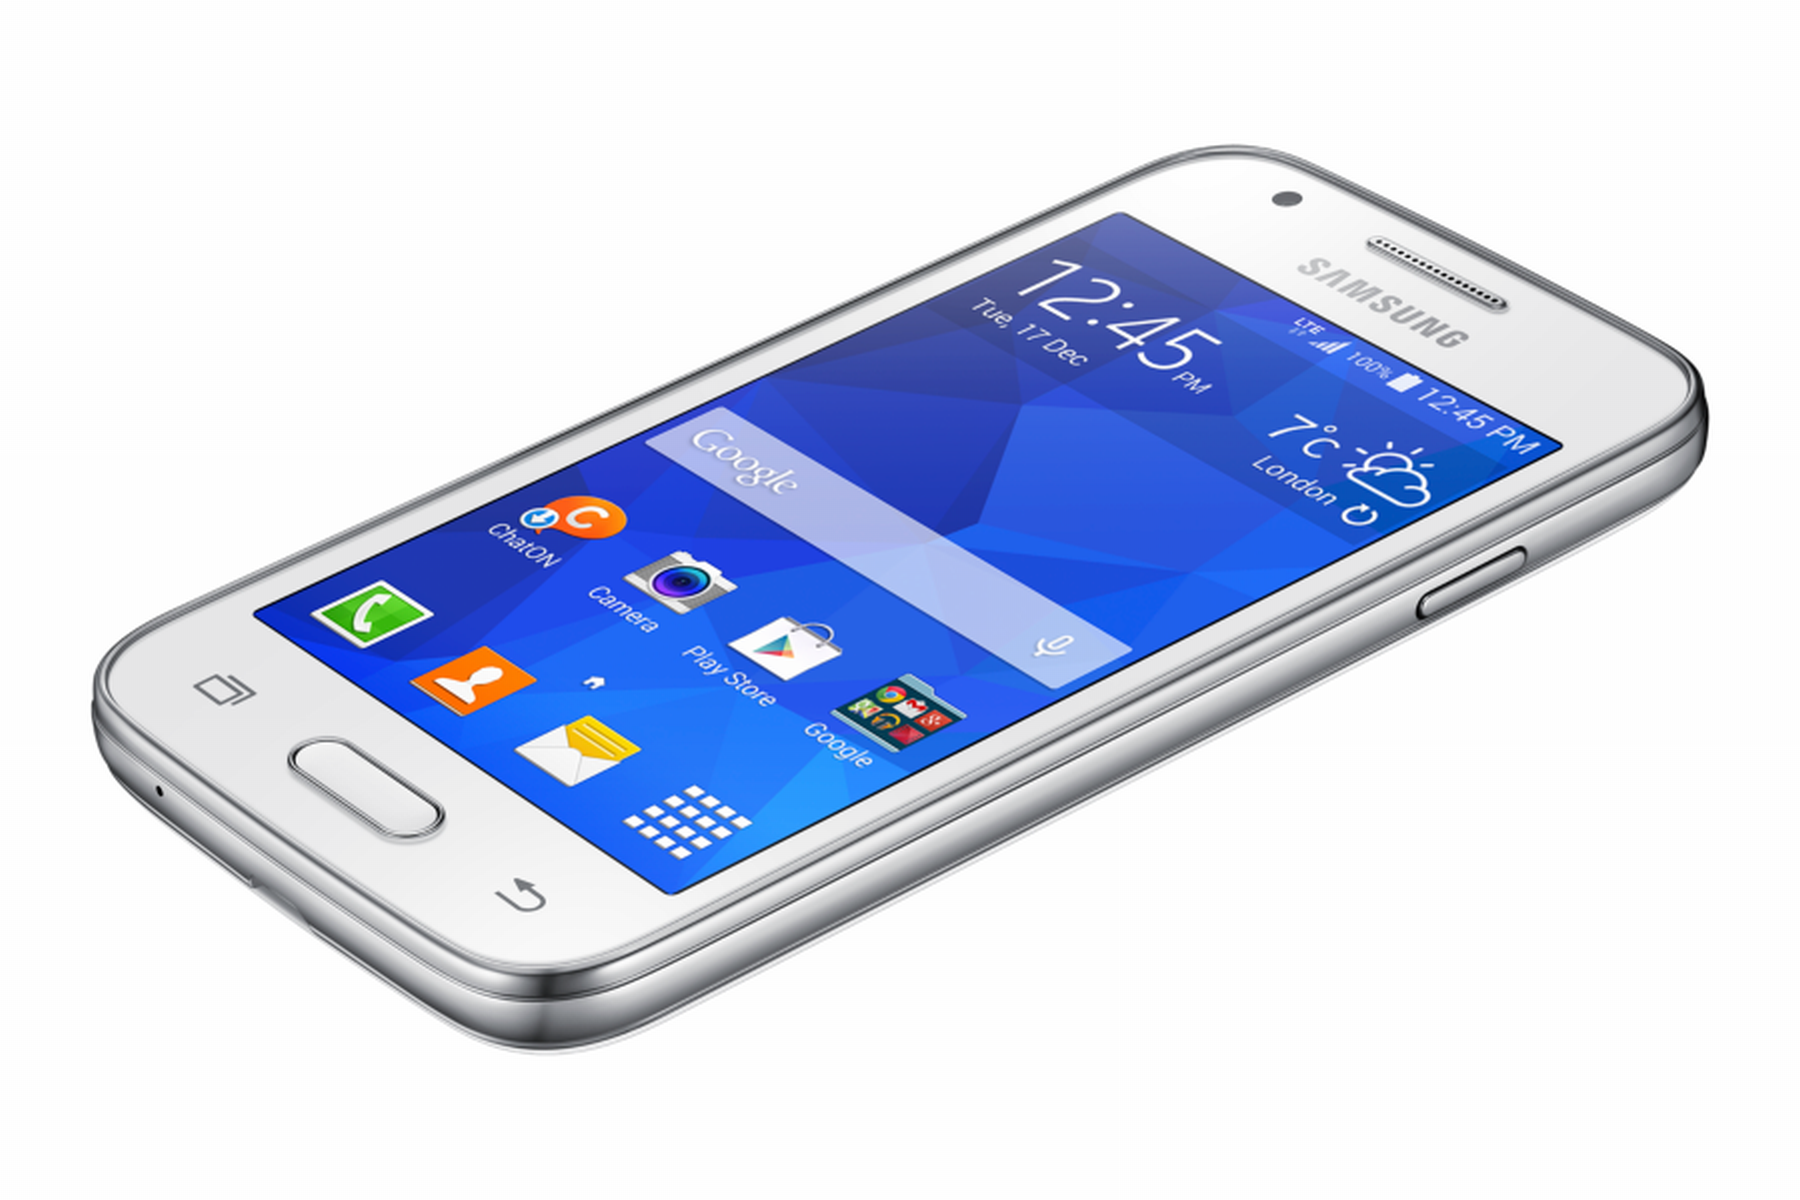 Samsung Galaxy Ace 4 To Go On Sale In The UK From October